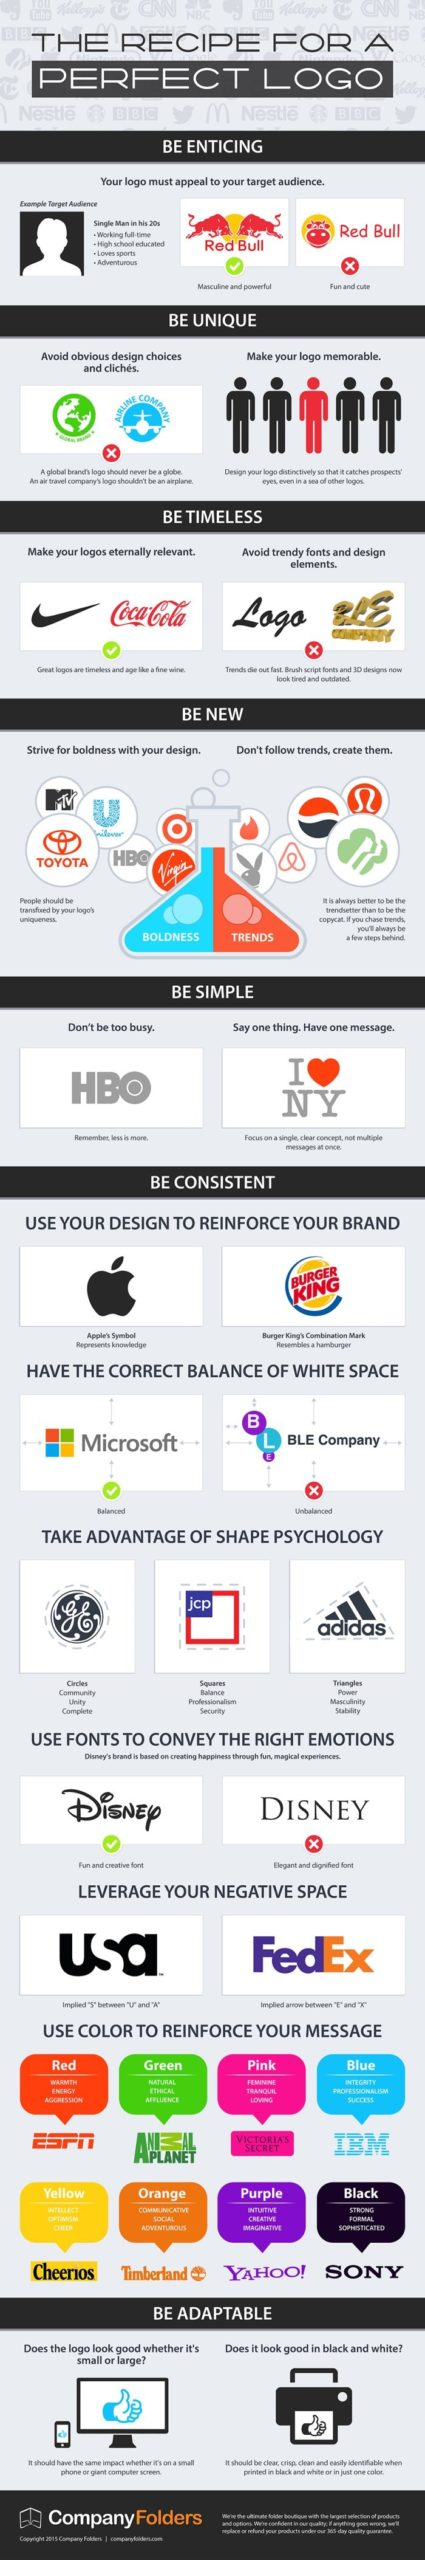 How to Design the Perfect Business Logo Infographic Image